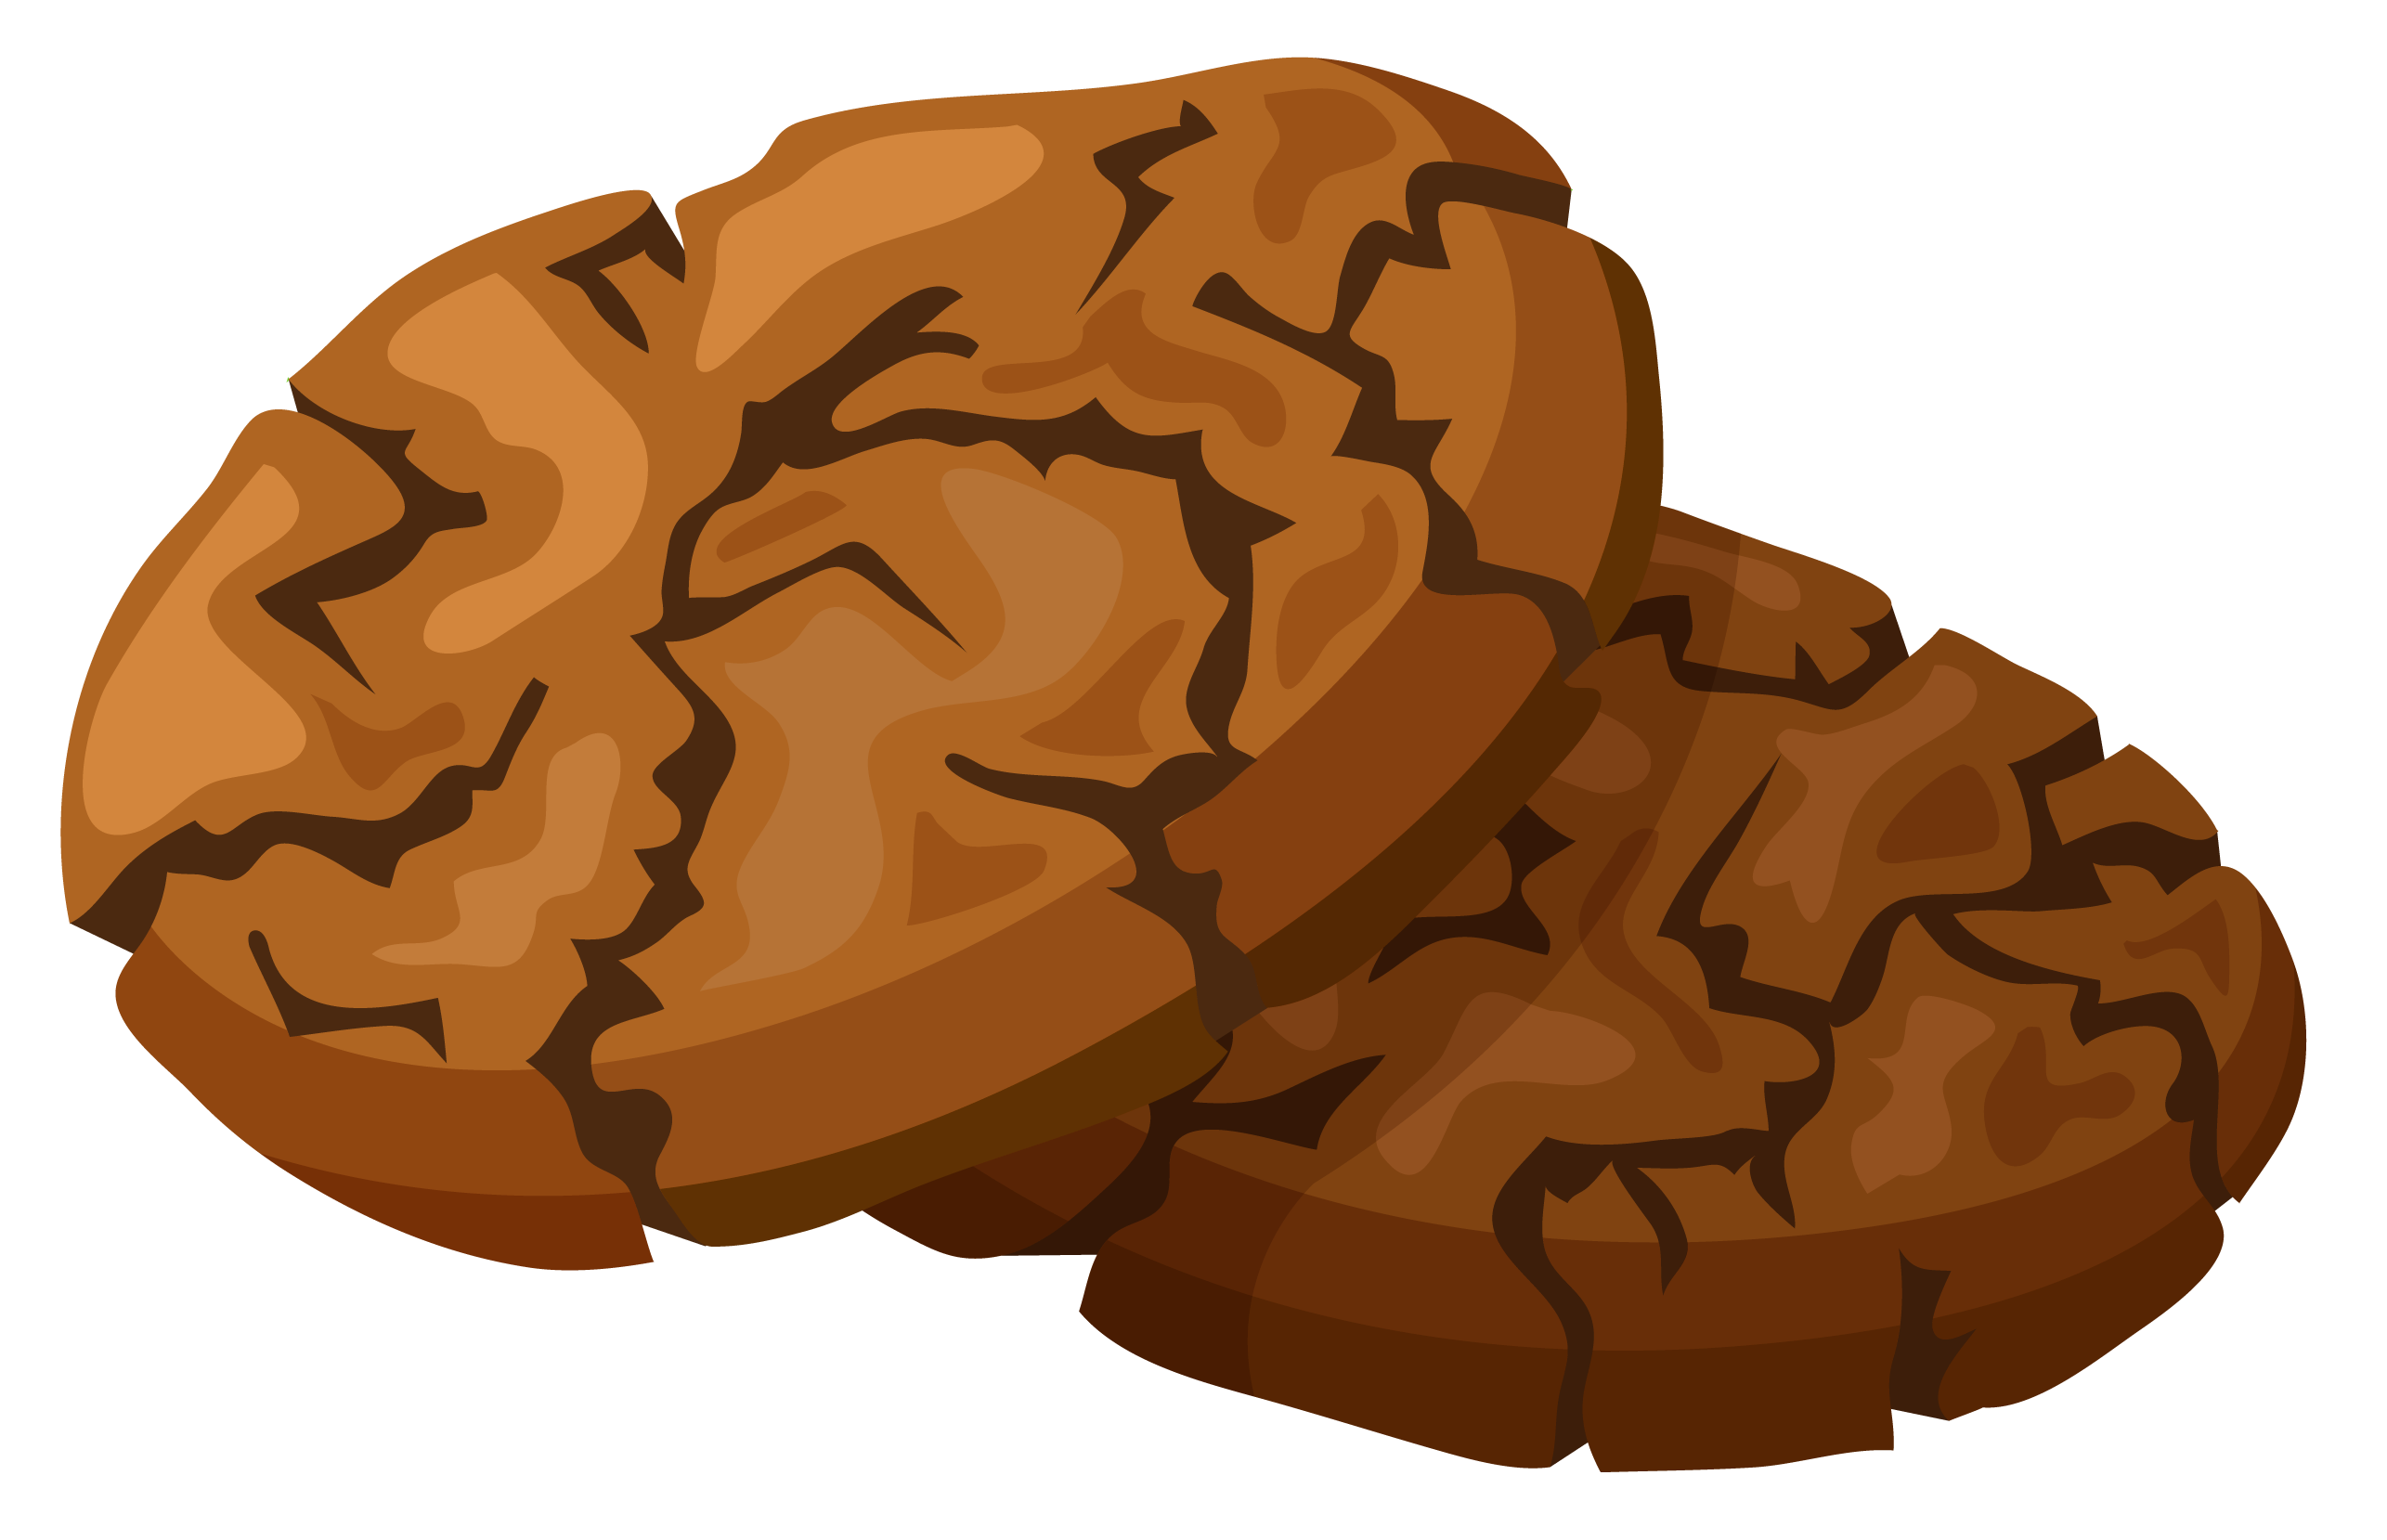 plate of cookies png